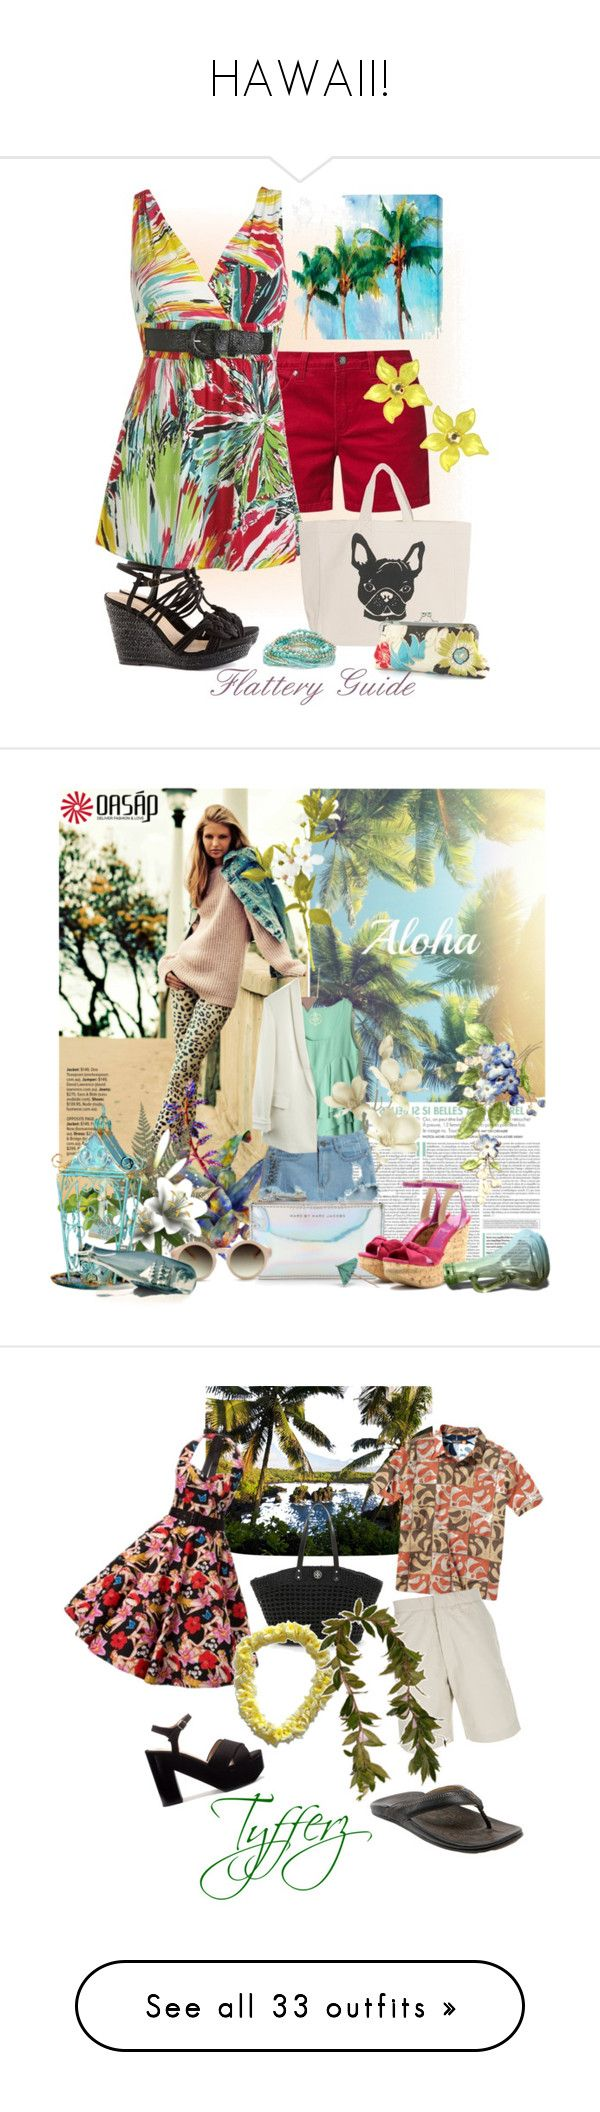 HAWAII! by mk-style on Polyvore featuring polyvore fashion style Cost Plus World Market Mazine Wet Seal 5 Preview H&M Accessorize Tarina Tarantino clothing Wedges tropical summeroutfit Pier 1 Imports Marc by Marc Jacobs Retrò Jimmy Choo Zara OluKai Quiksilver Gaspard Yurkievich Tory Burch quicksilver hawaii Lauren Ralph Lauren Fantasy Jewelry Box Vivienne Westwood GUESS CO-OP Barneys New York Wallis Mar y Sol Fat Face Kate Spade FOSSIL Giambattista Valli Nicki Minaj Zimmermann OPI Sephora…